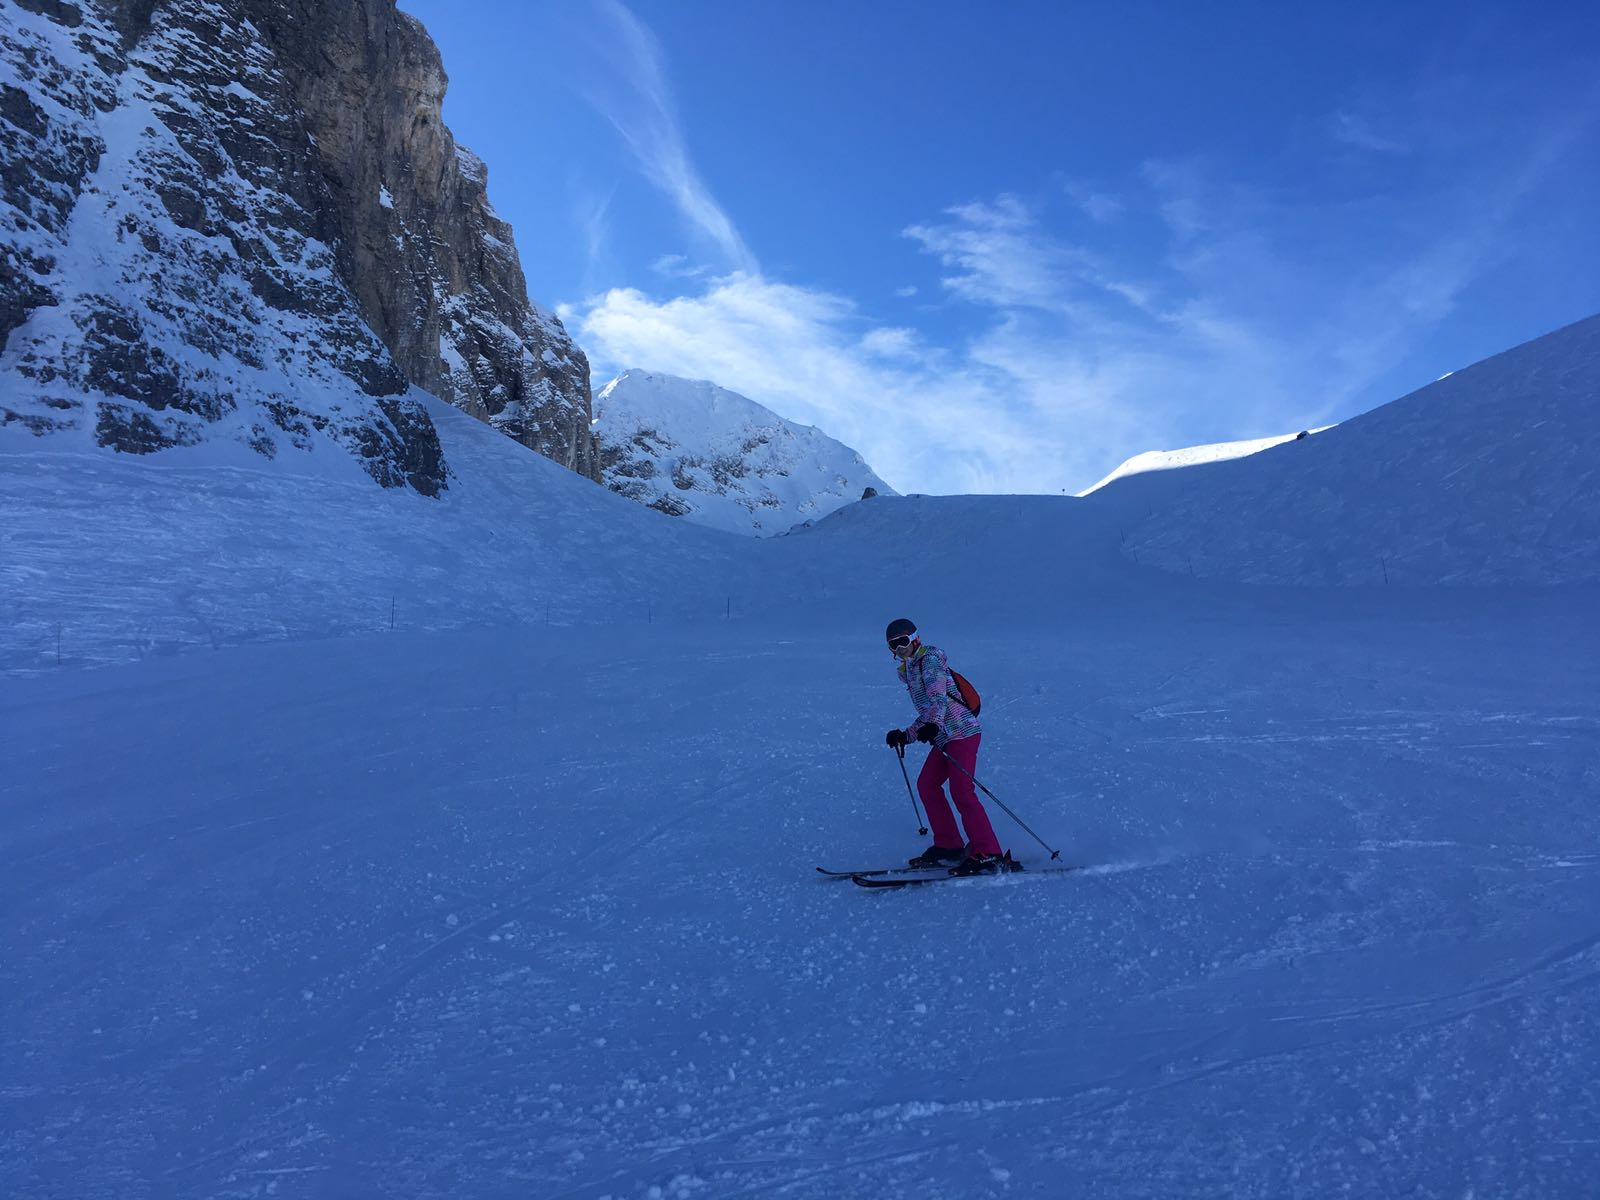 wintersport skiing